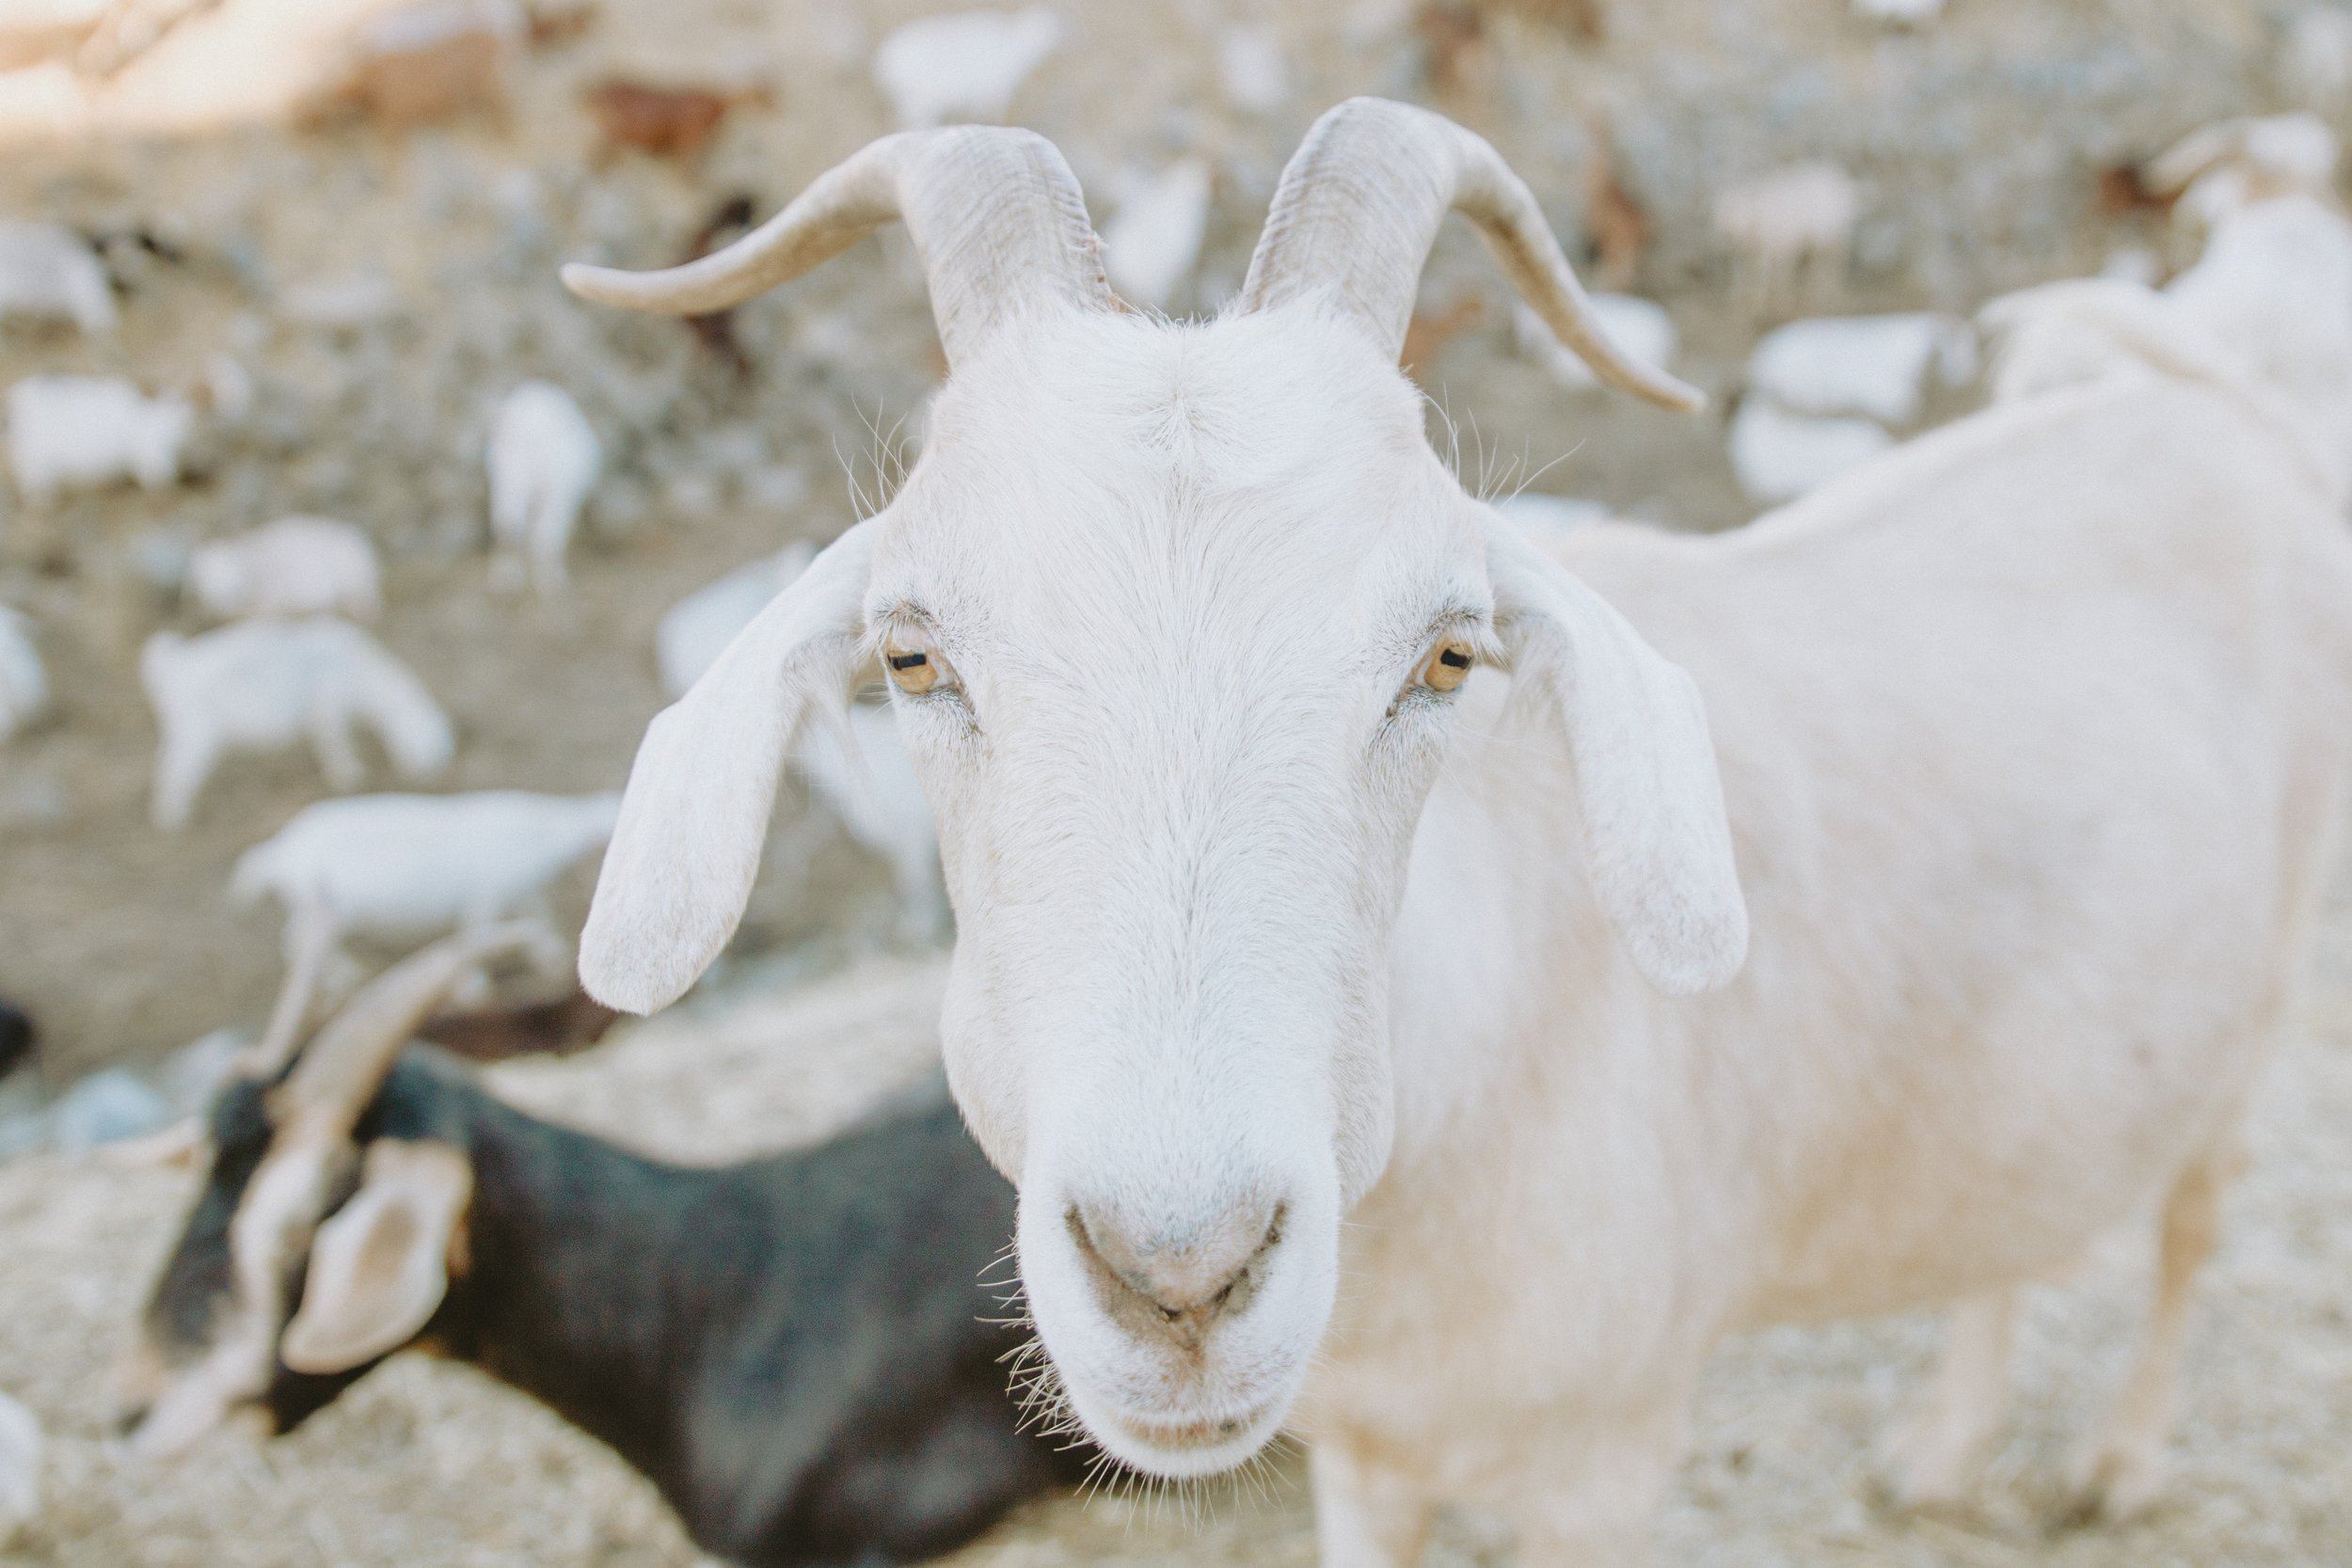 Eat your heart out, barnyard. (pic: Caleb Woods on  Unsplash )